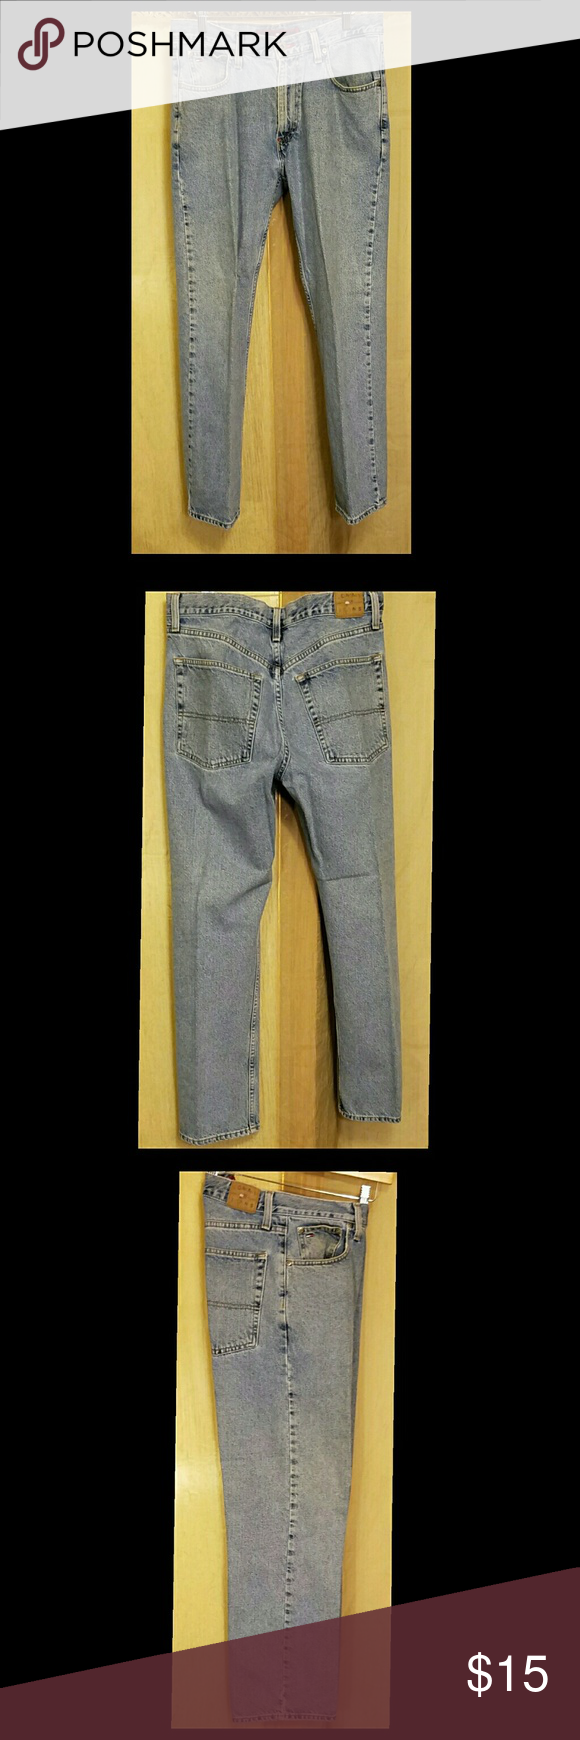 Tommy Hilfiger Jeans Light blue Tommy Jeans. Perfect condition! Size W32 L30 Tommy Hilfiger Jeans Straight